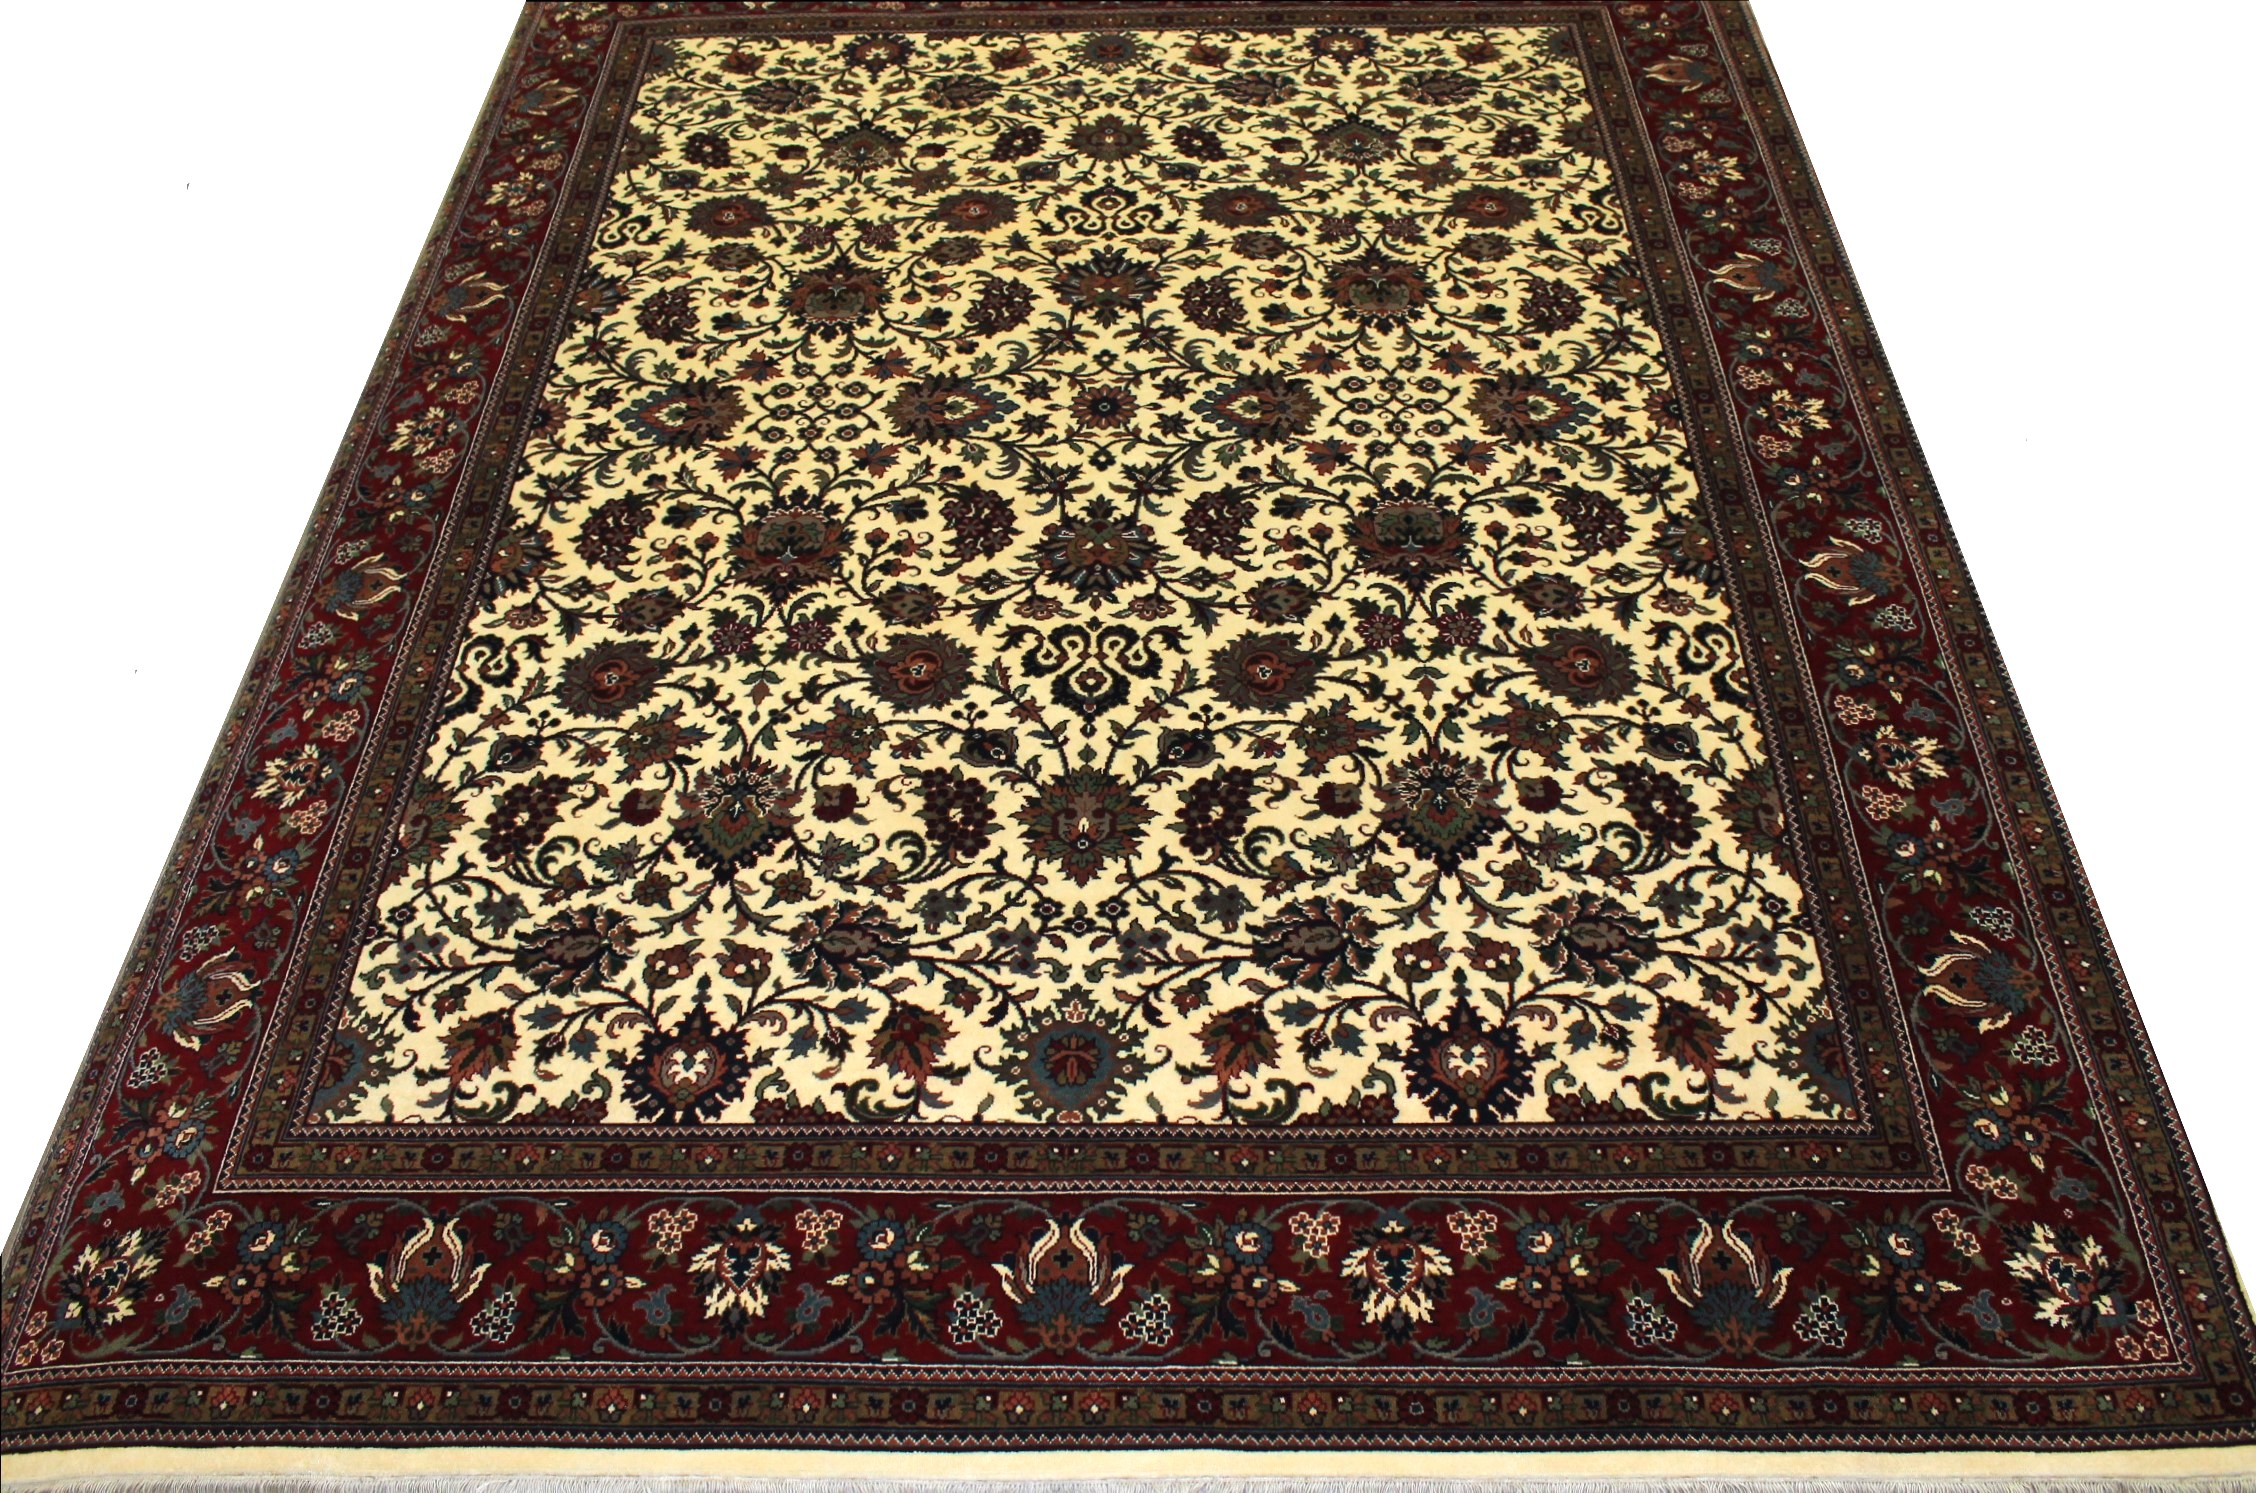 8x10 Traditional Hand Knotted Wool Area Rug - MR11571